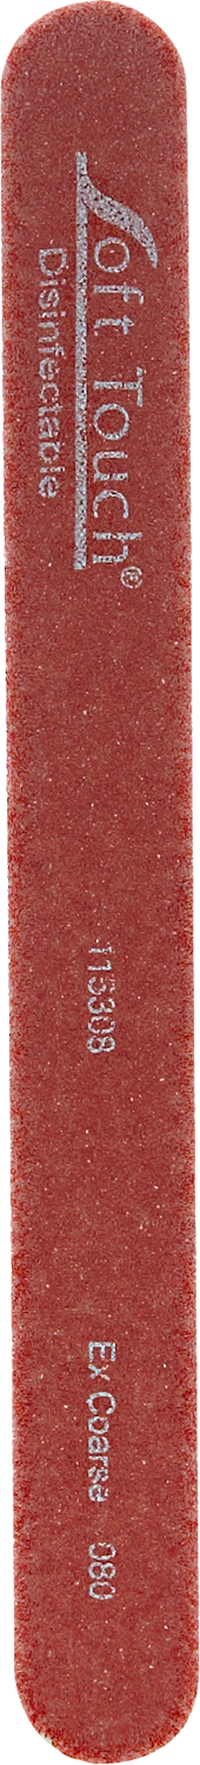 St.Tropez Red Mylar X-Coarse Nail File 80 Grit